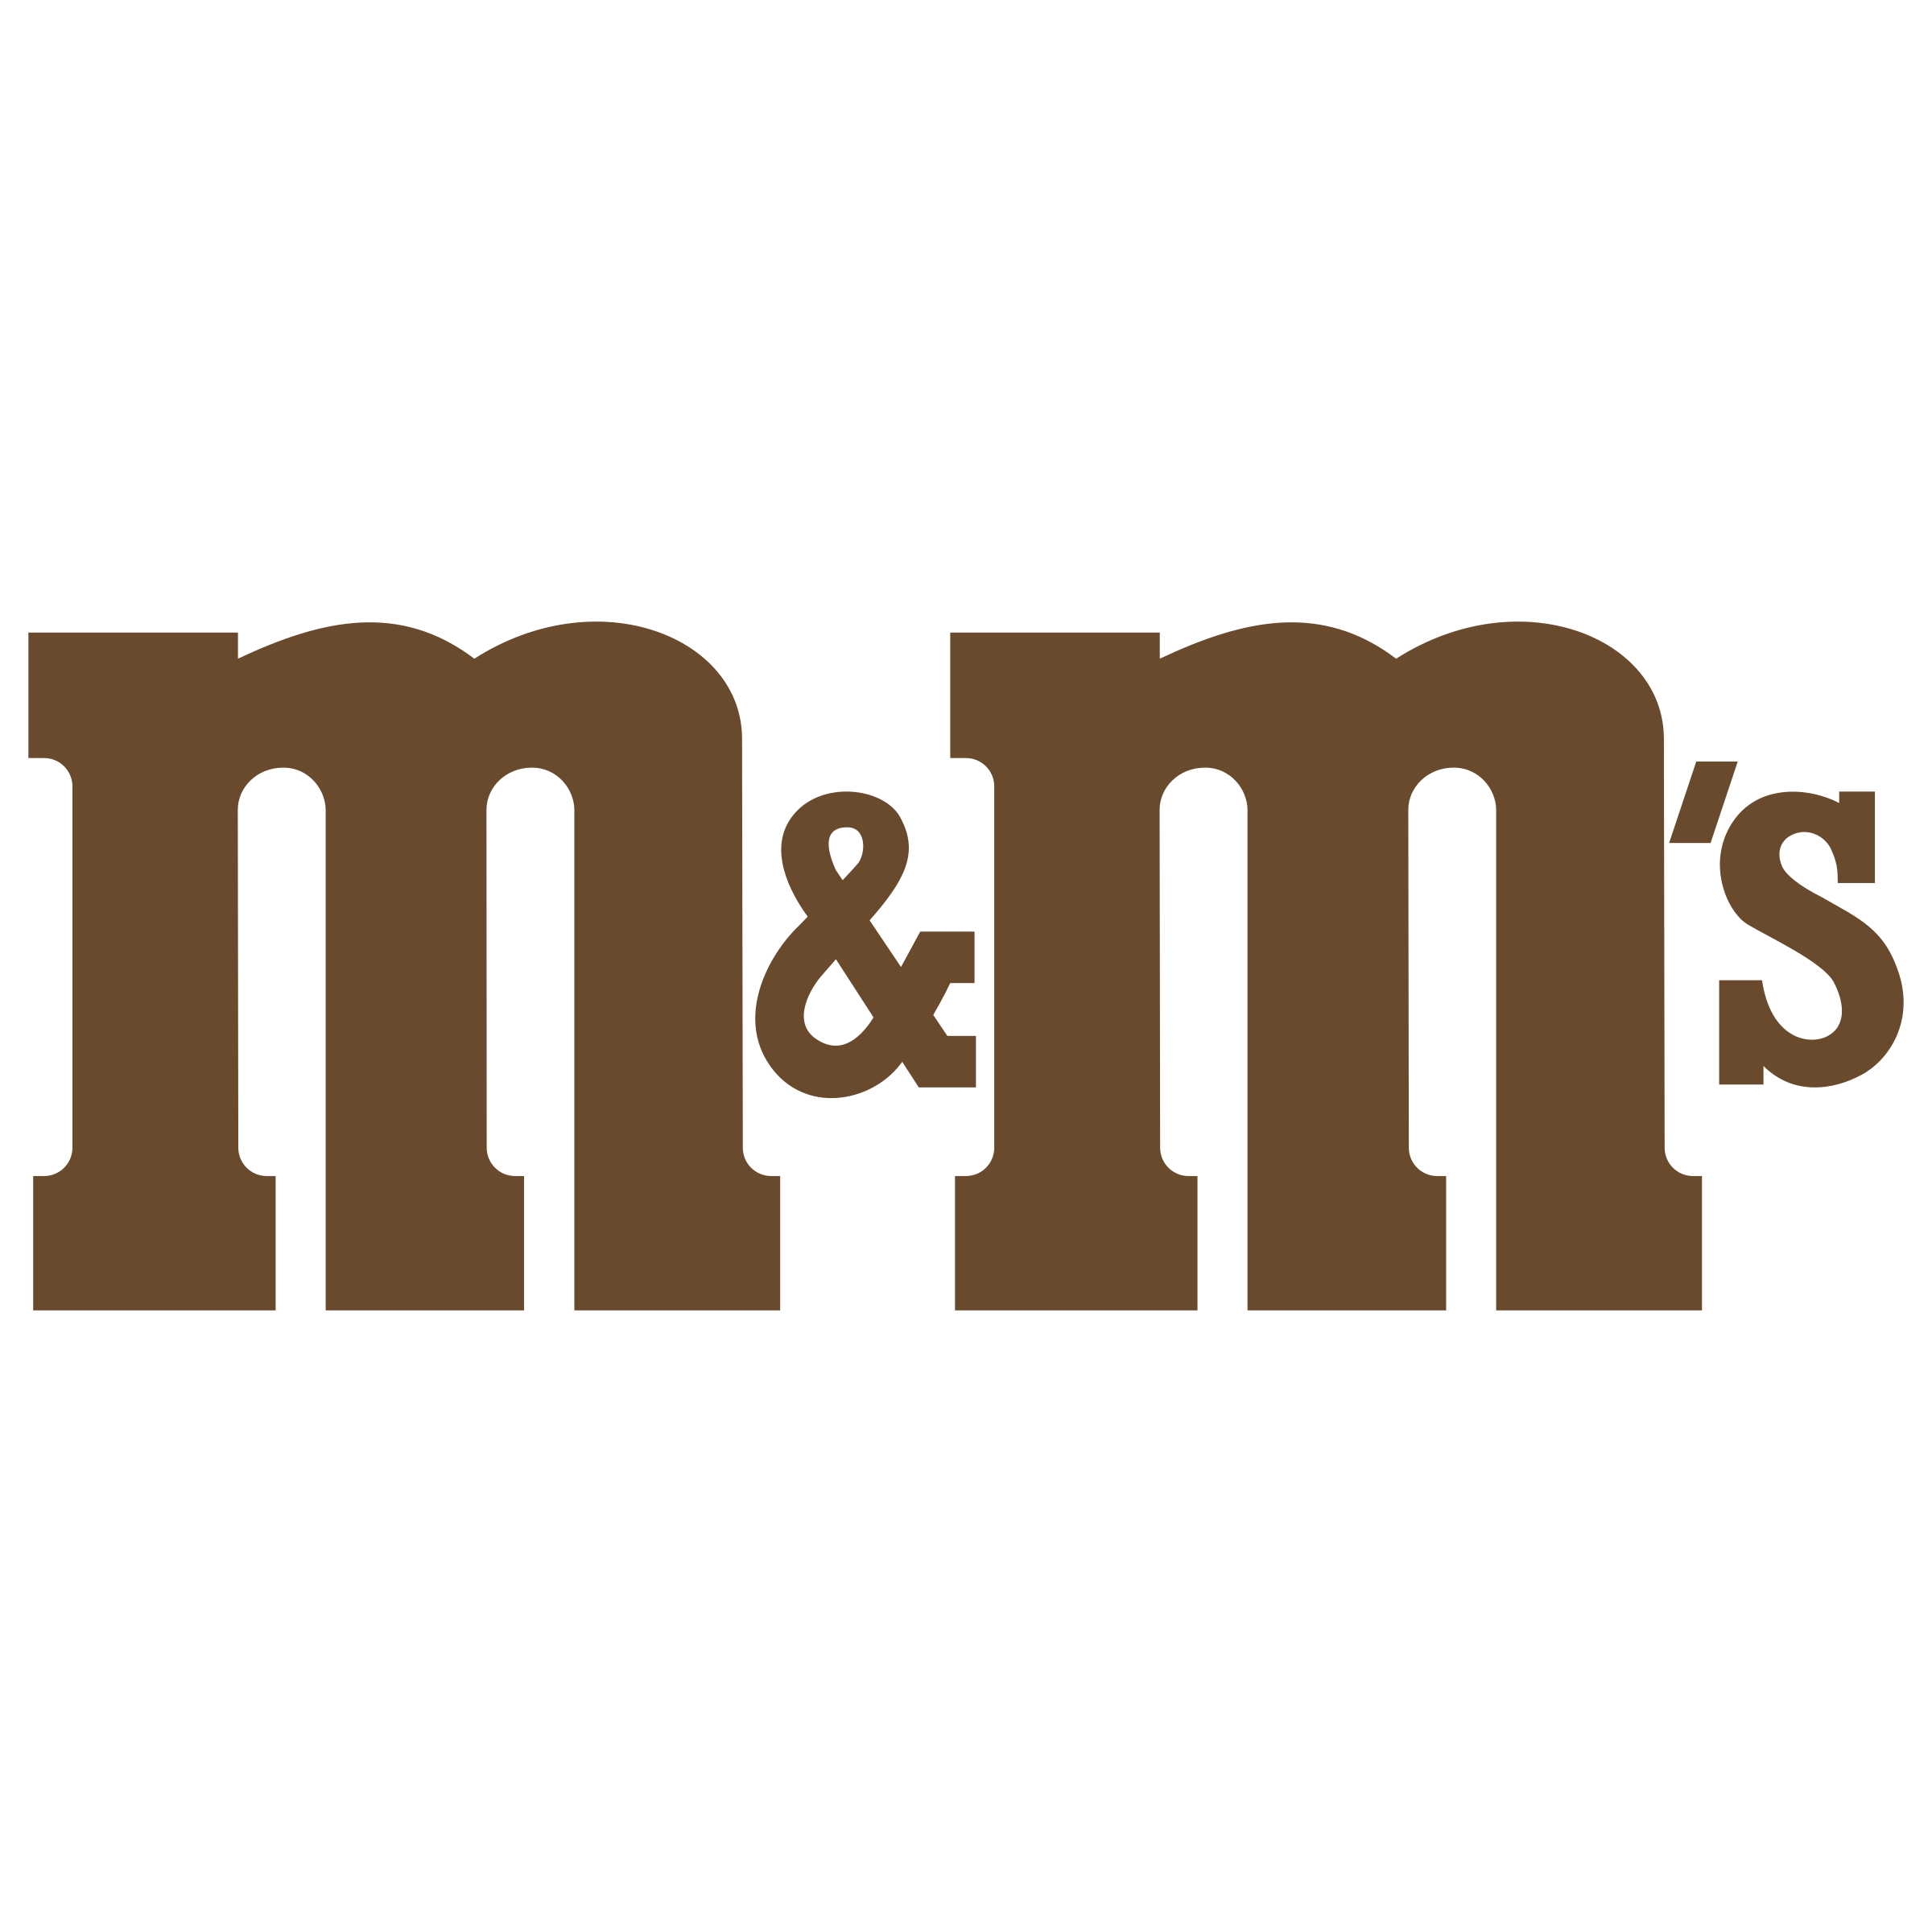 M&M's Logo - m&m's Logo PNG Transparent & SVG Vector - Freebie Supply